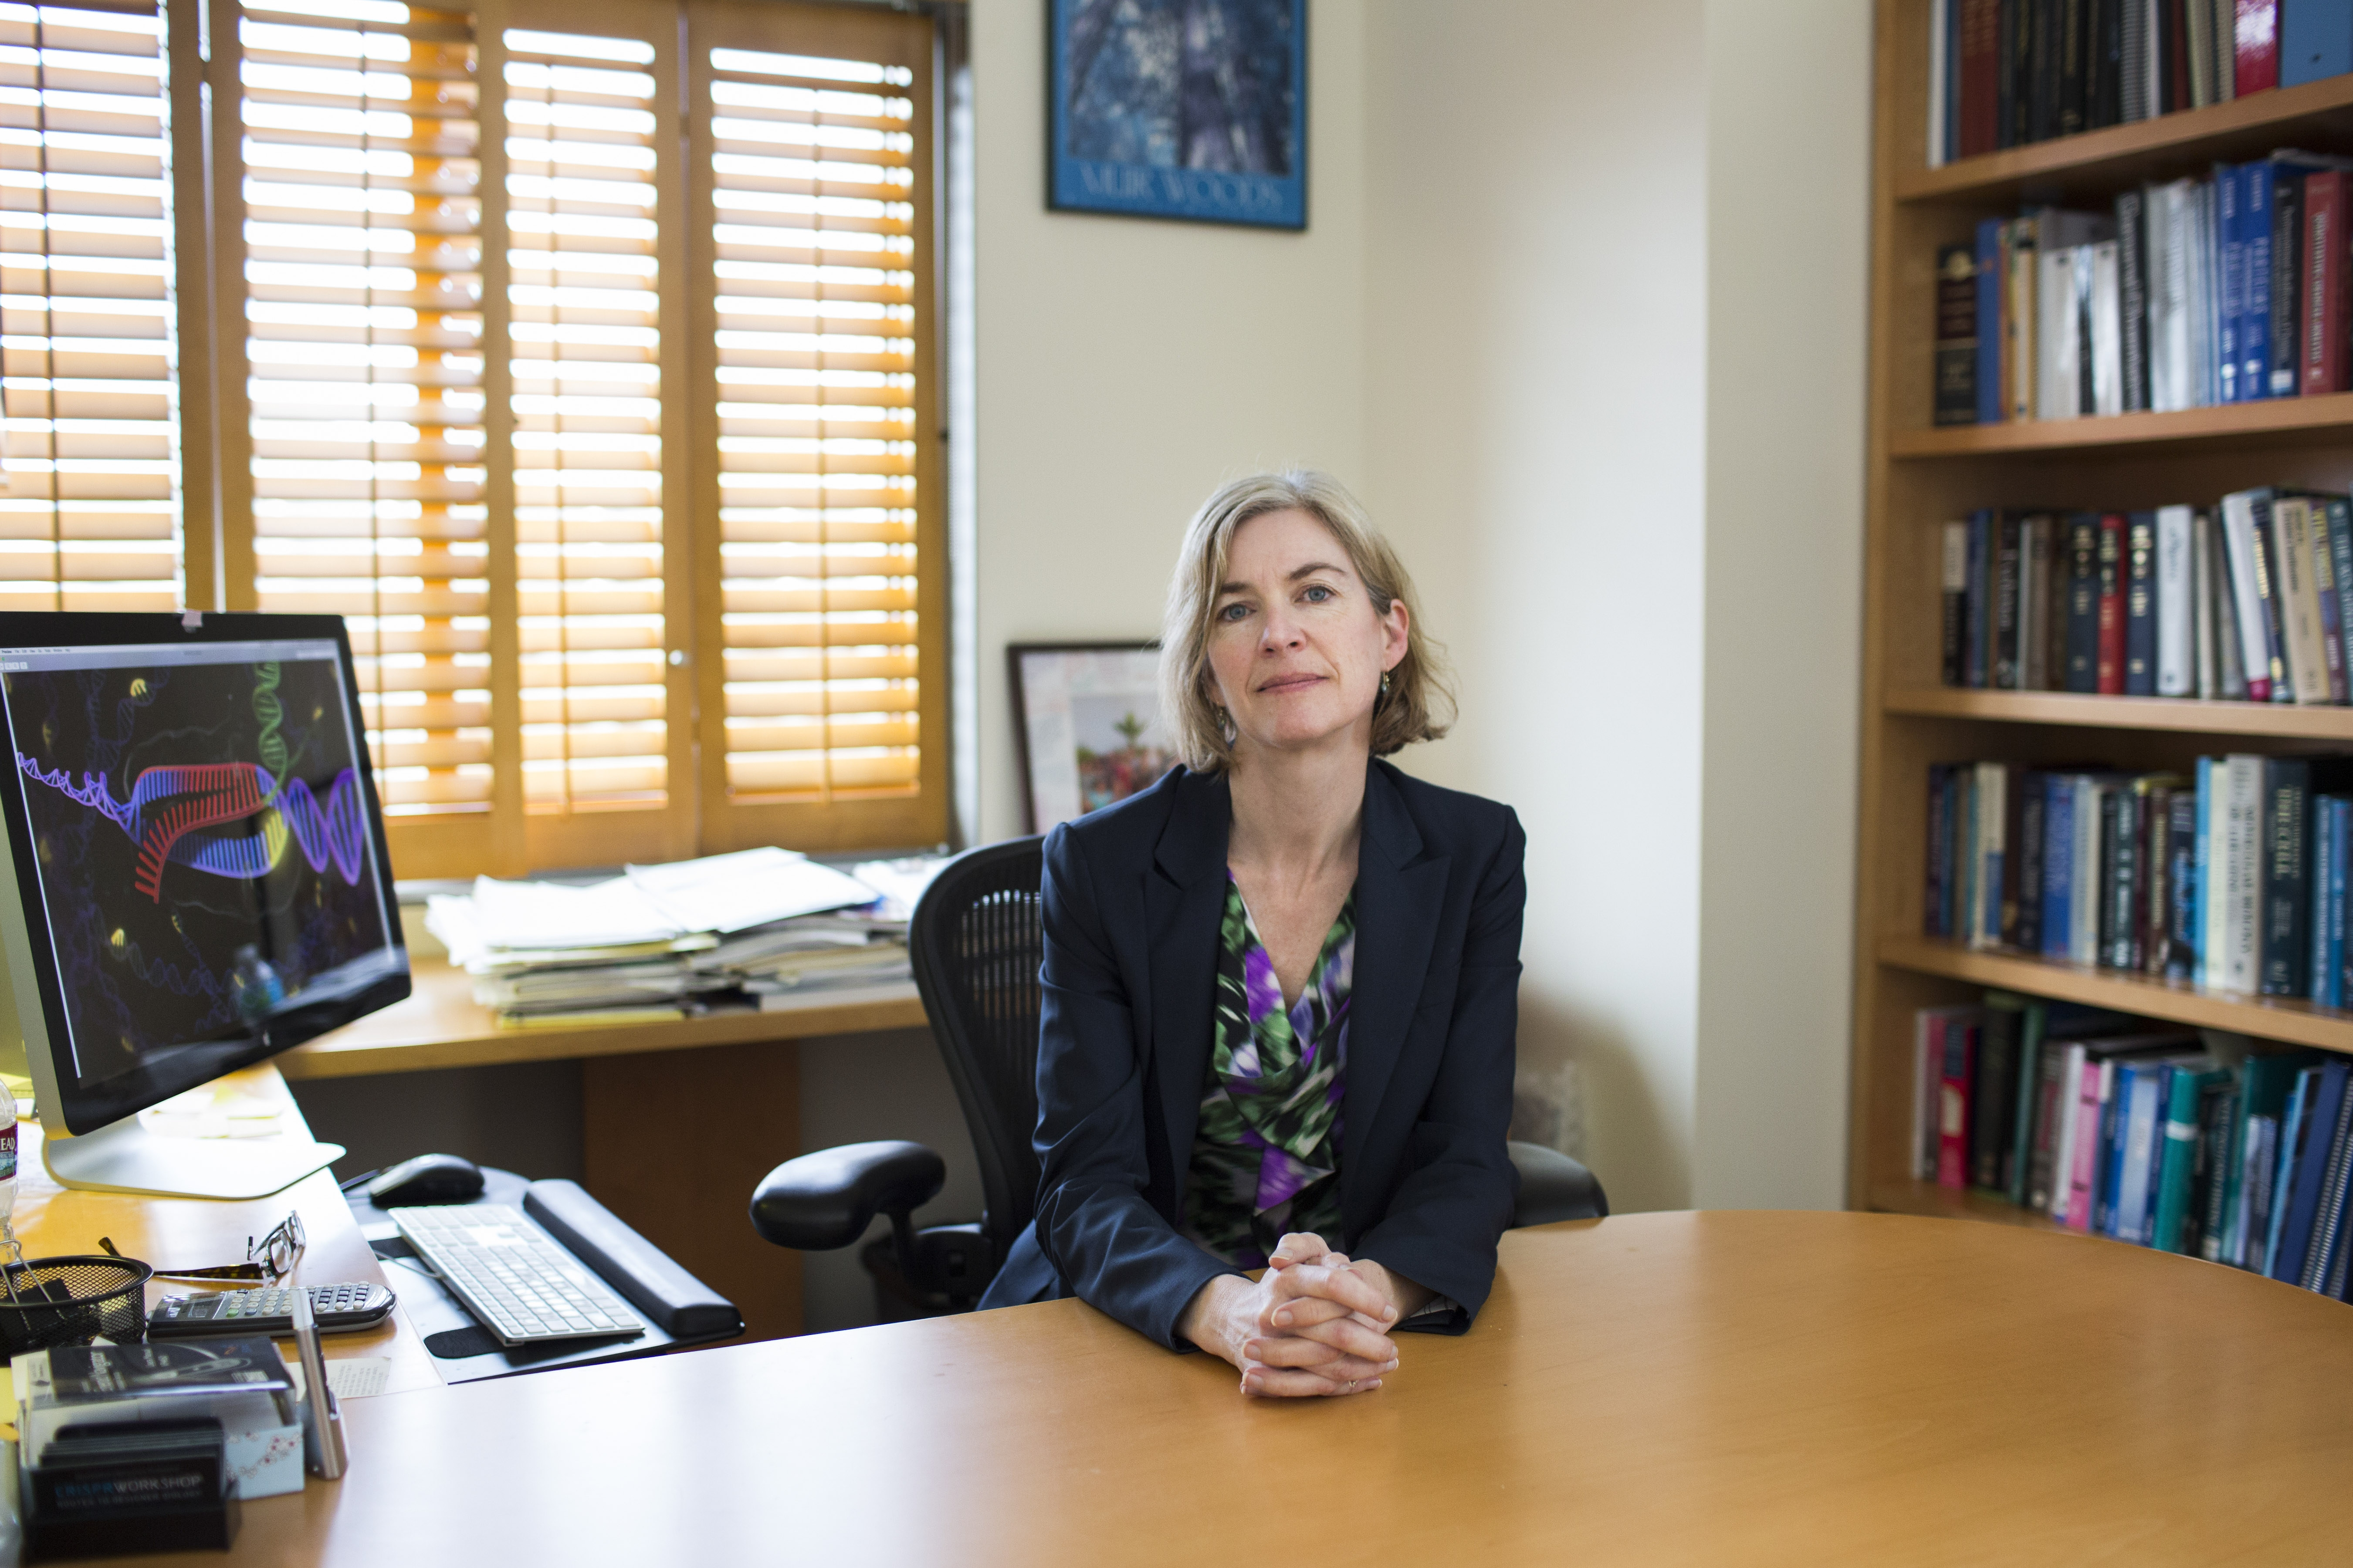 Jennifer Doudna, a genetics researcher who helped develop the genome editing technique, urges controls over its use. (New York Times)